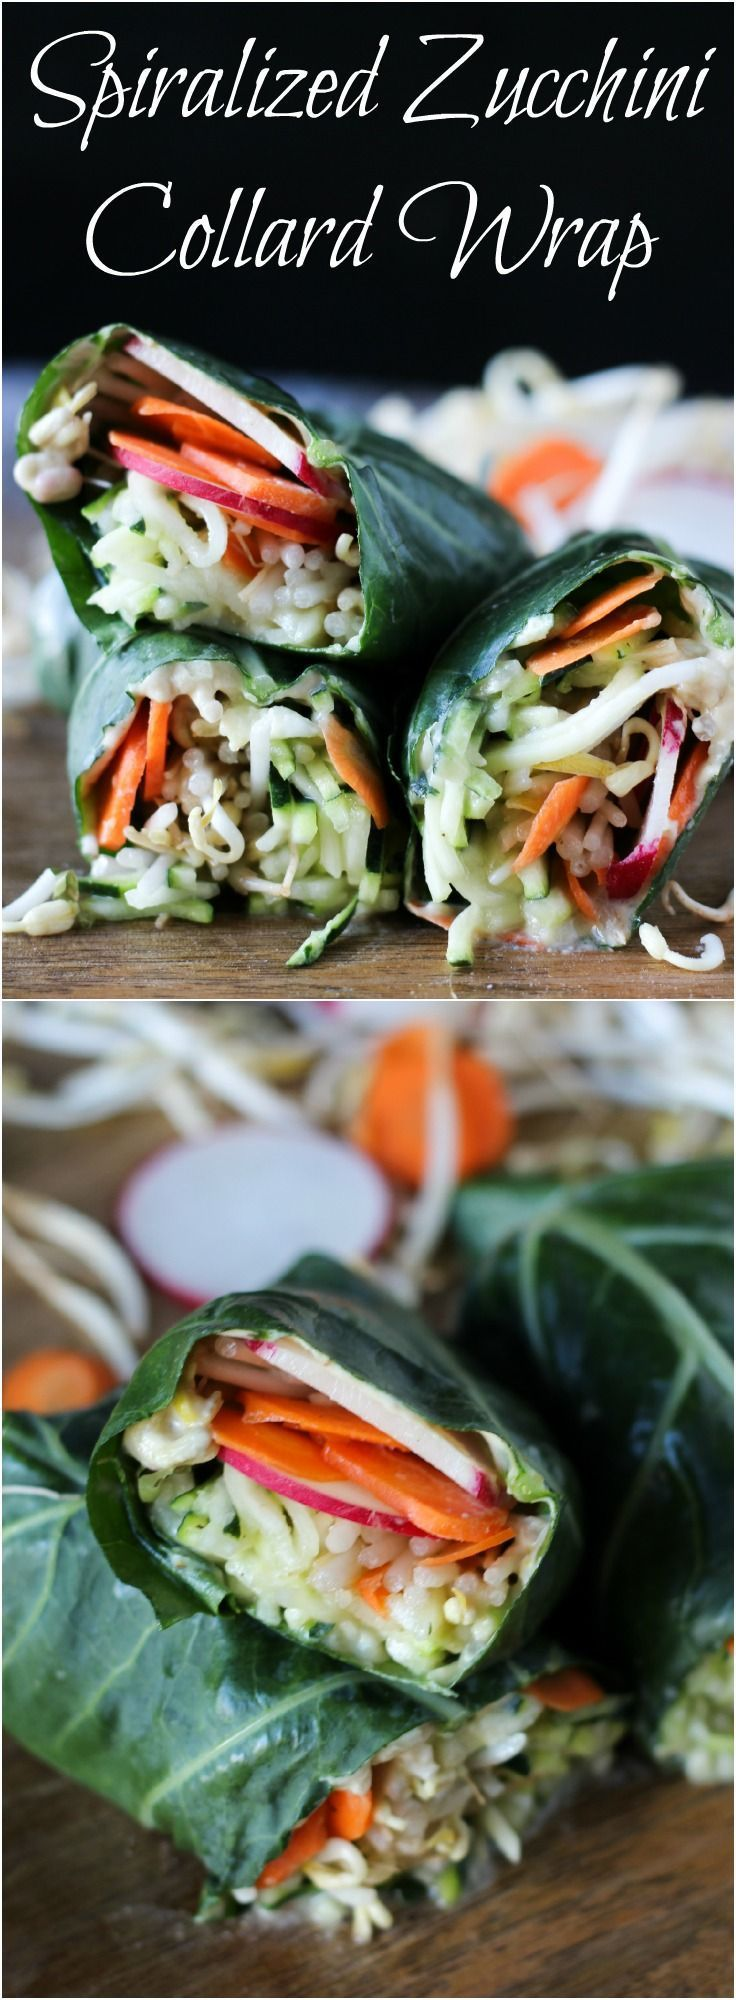 Spiralized Zucchini and Bean Sprout Collard Wrap, a healthy lunch that's gluten-free and vegan friendly l www.stephinthyme.com